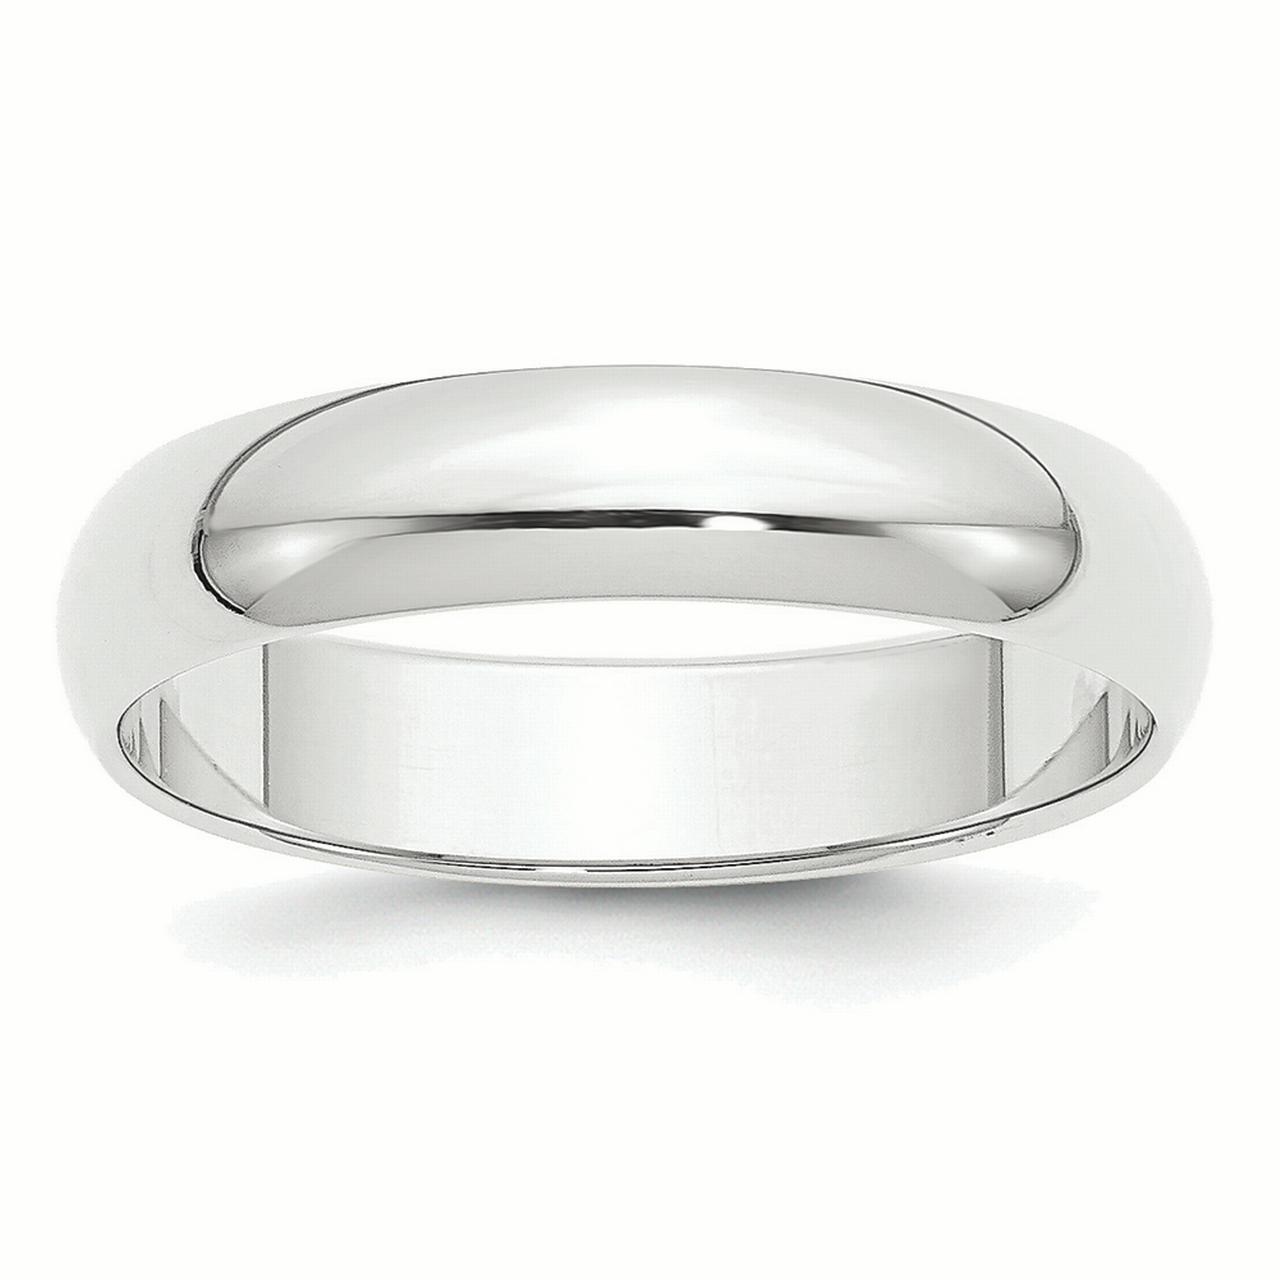 Platinum 5mm Half-Round Wedding Band Ring PHR050 by